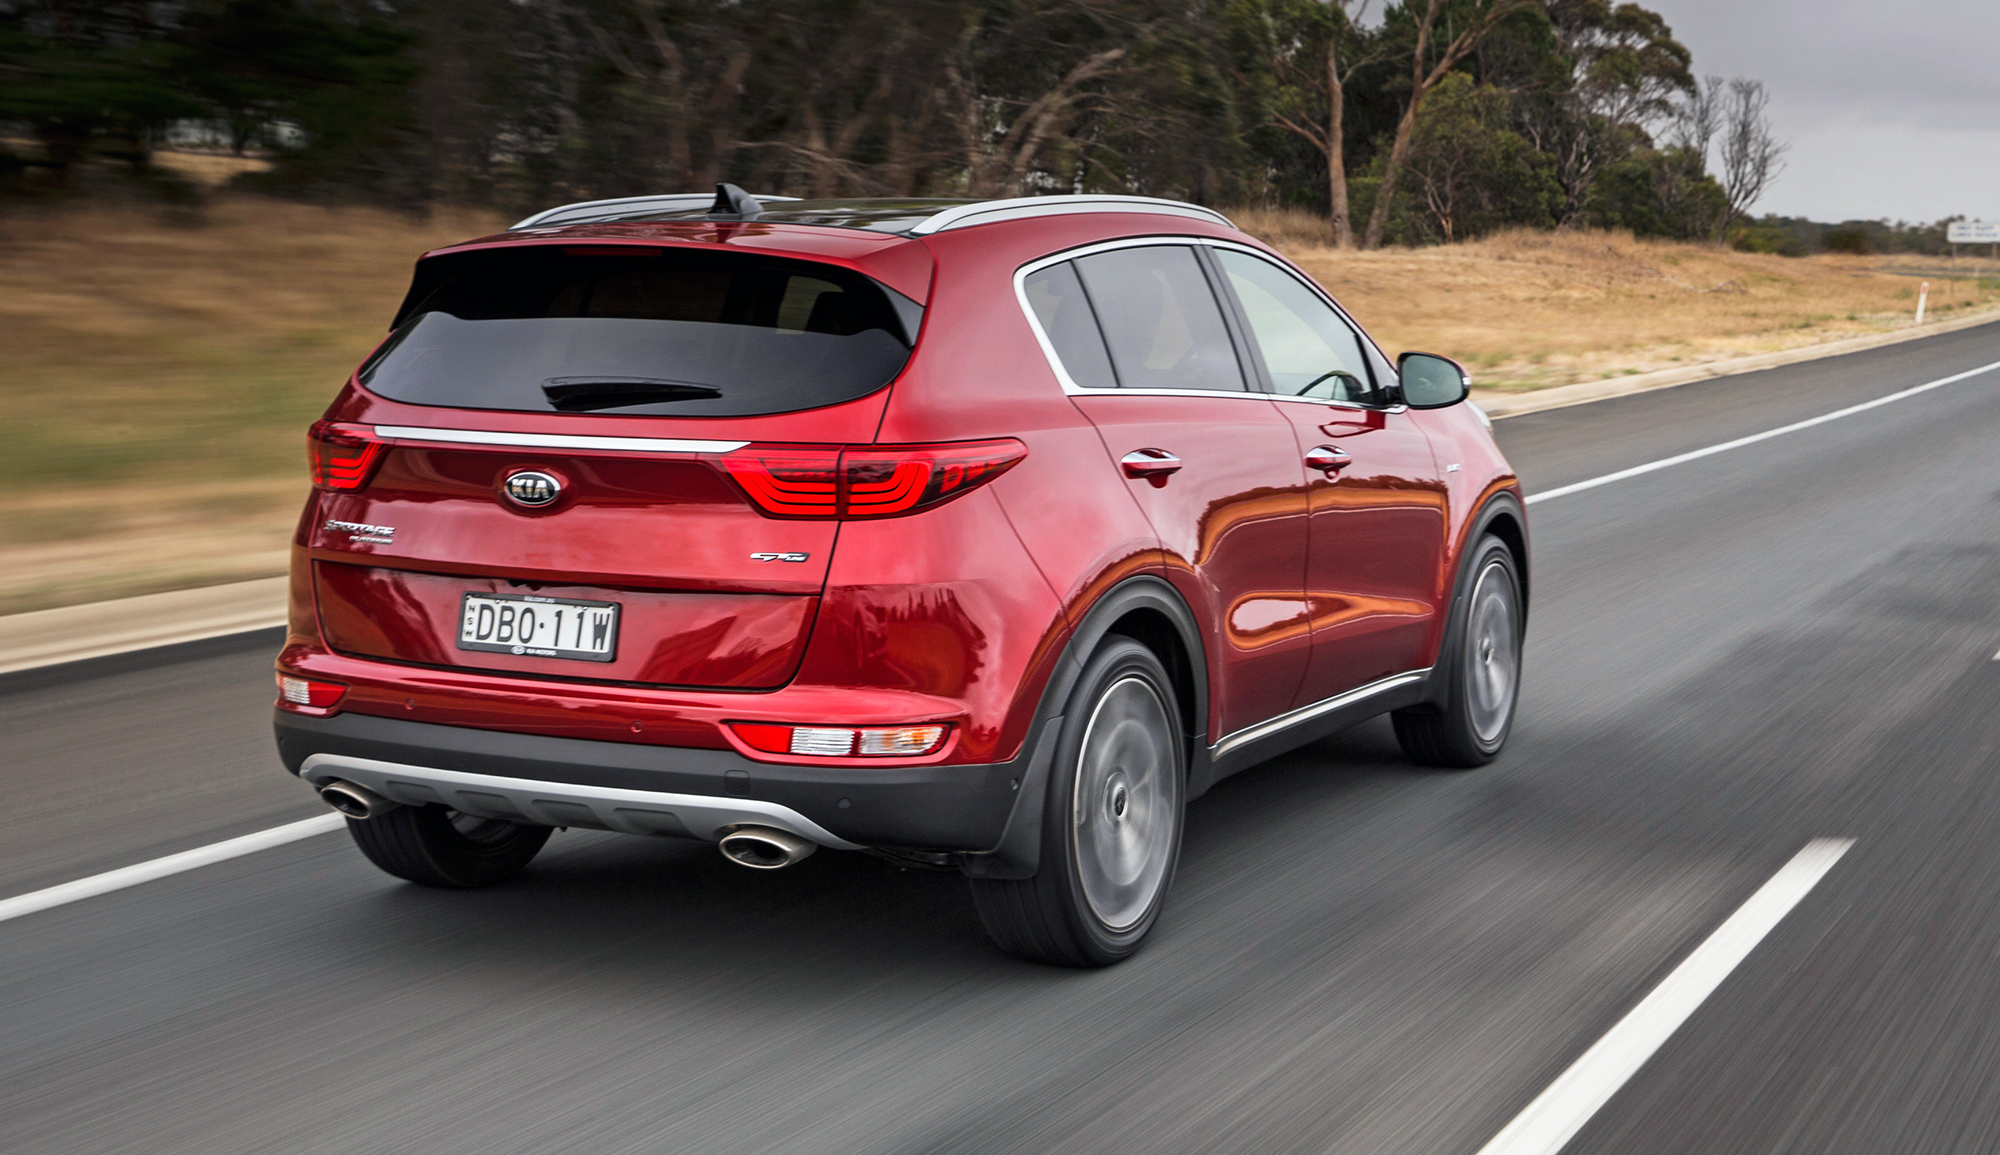 2016 kia sportage pricing and specifications photos caradvice. Black Bedroom Furniture Sets. Home Design Ideas